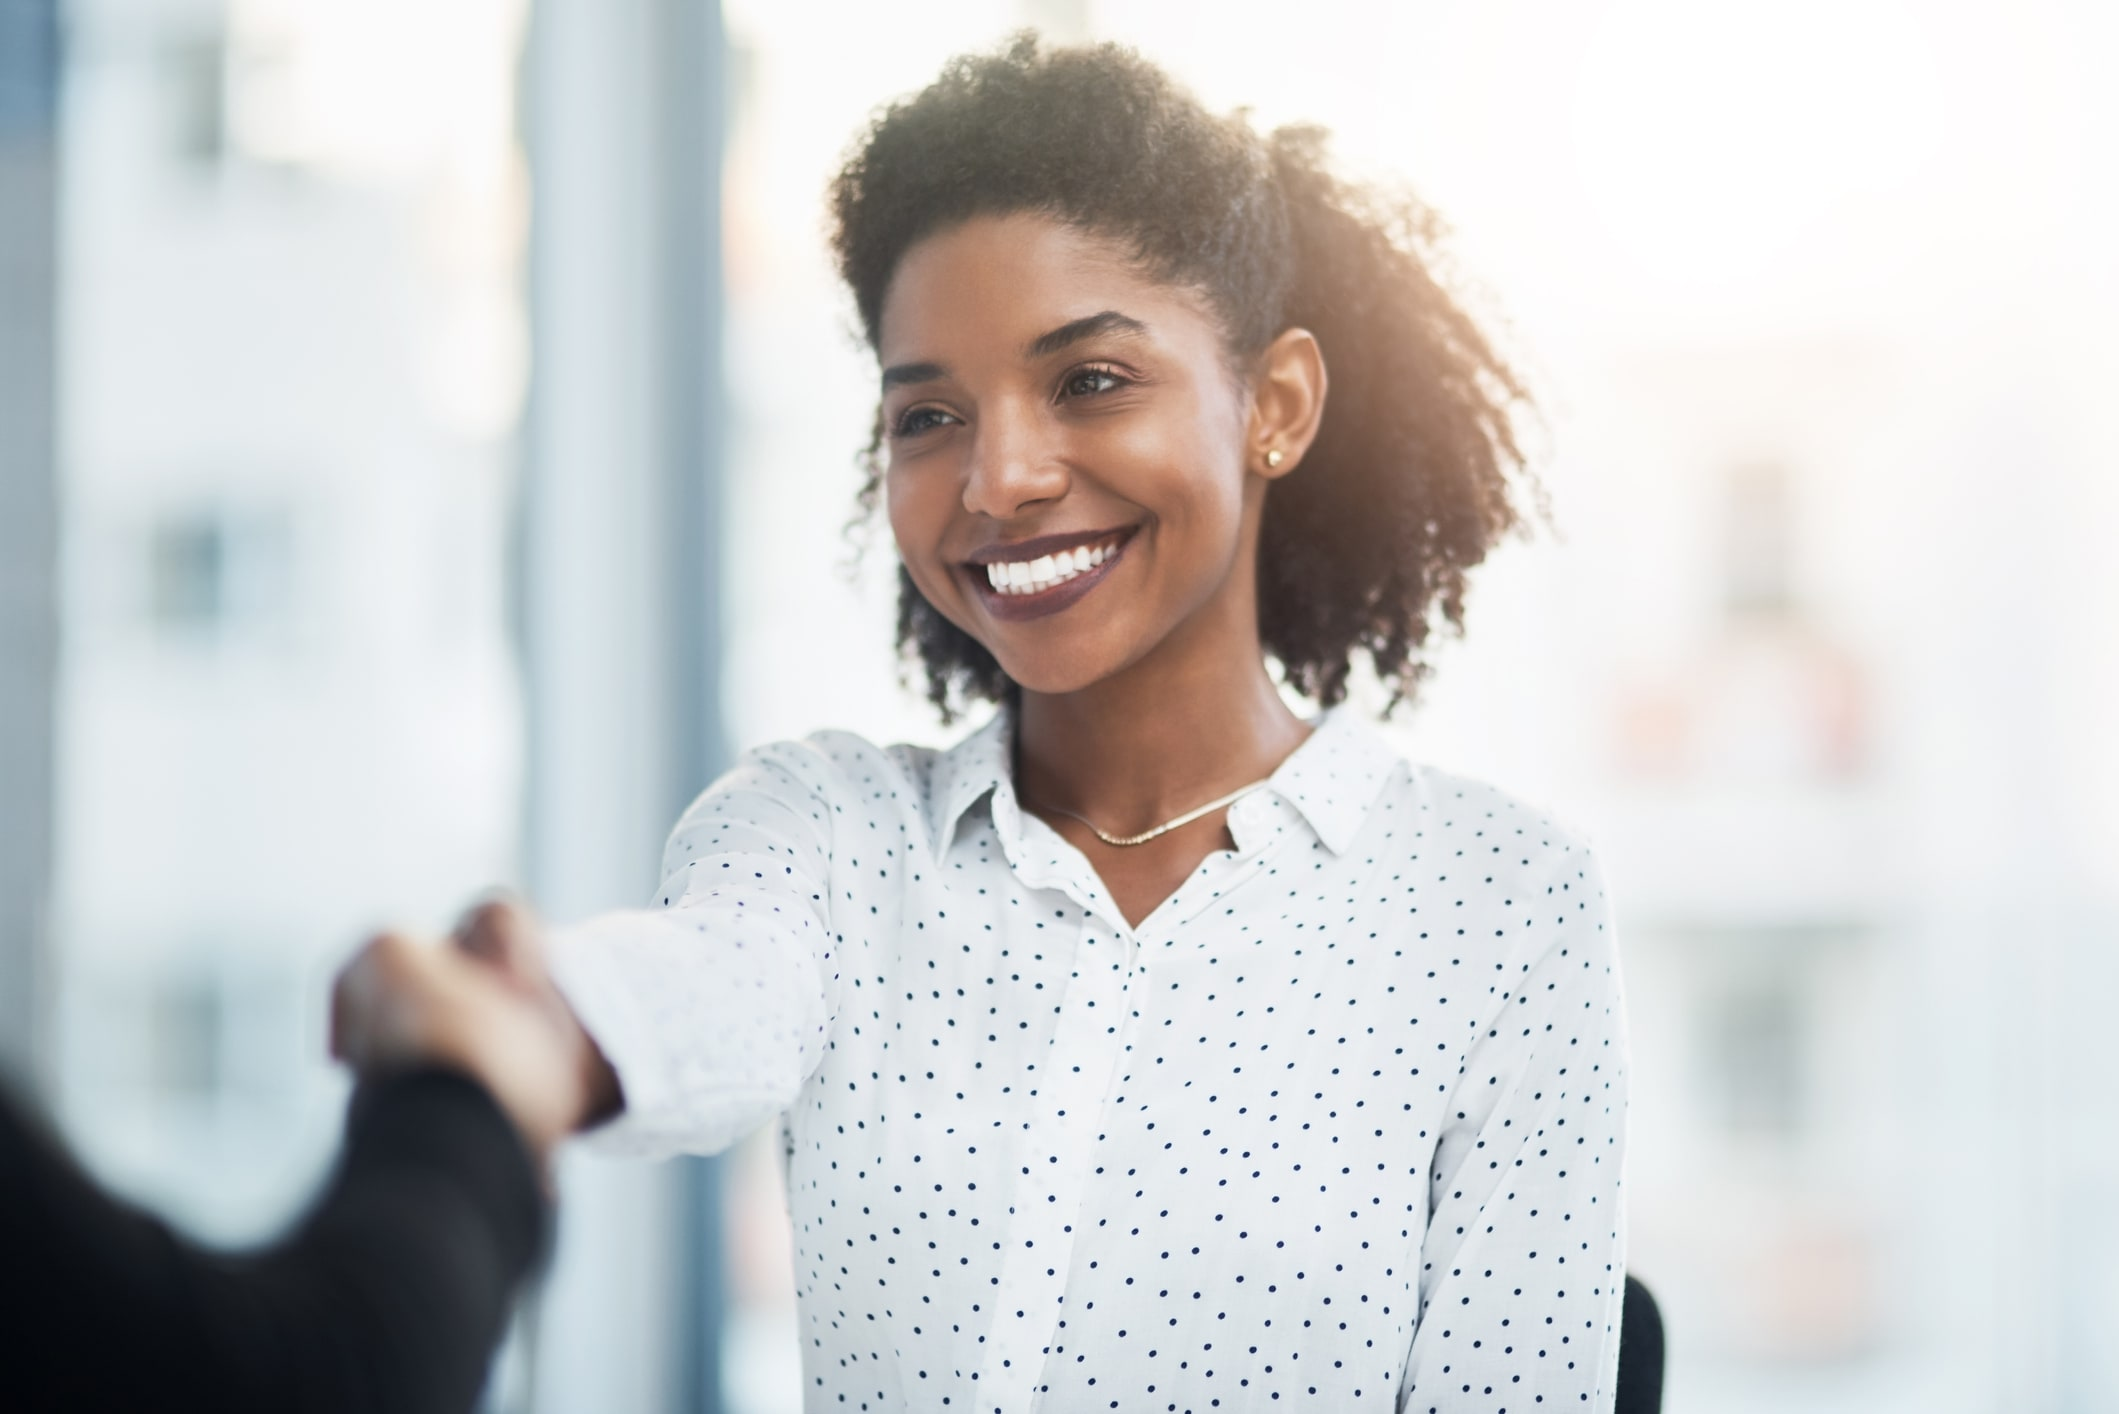 Smiling young businesswoman shakes a client's hand